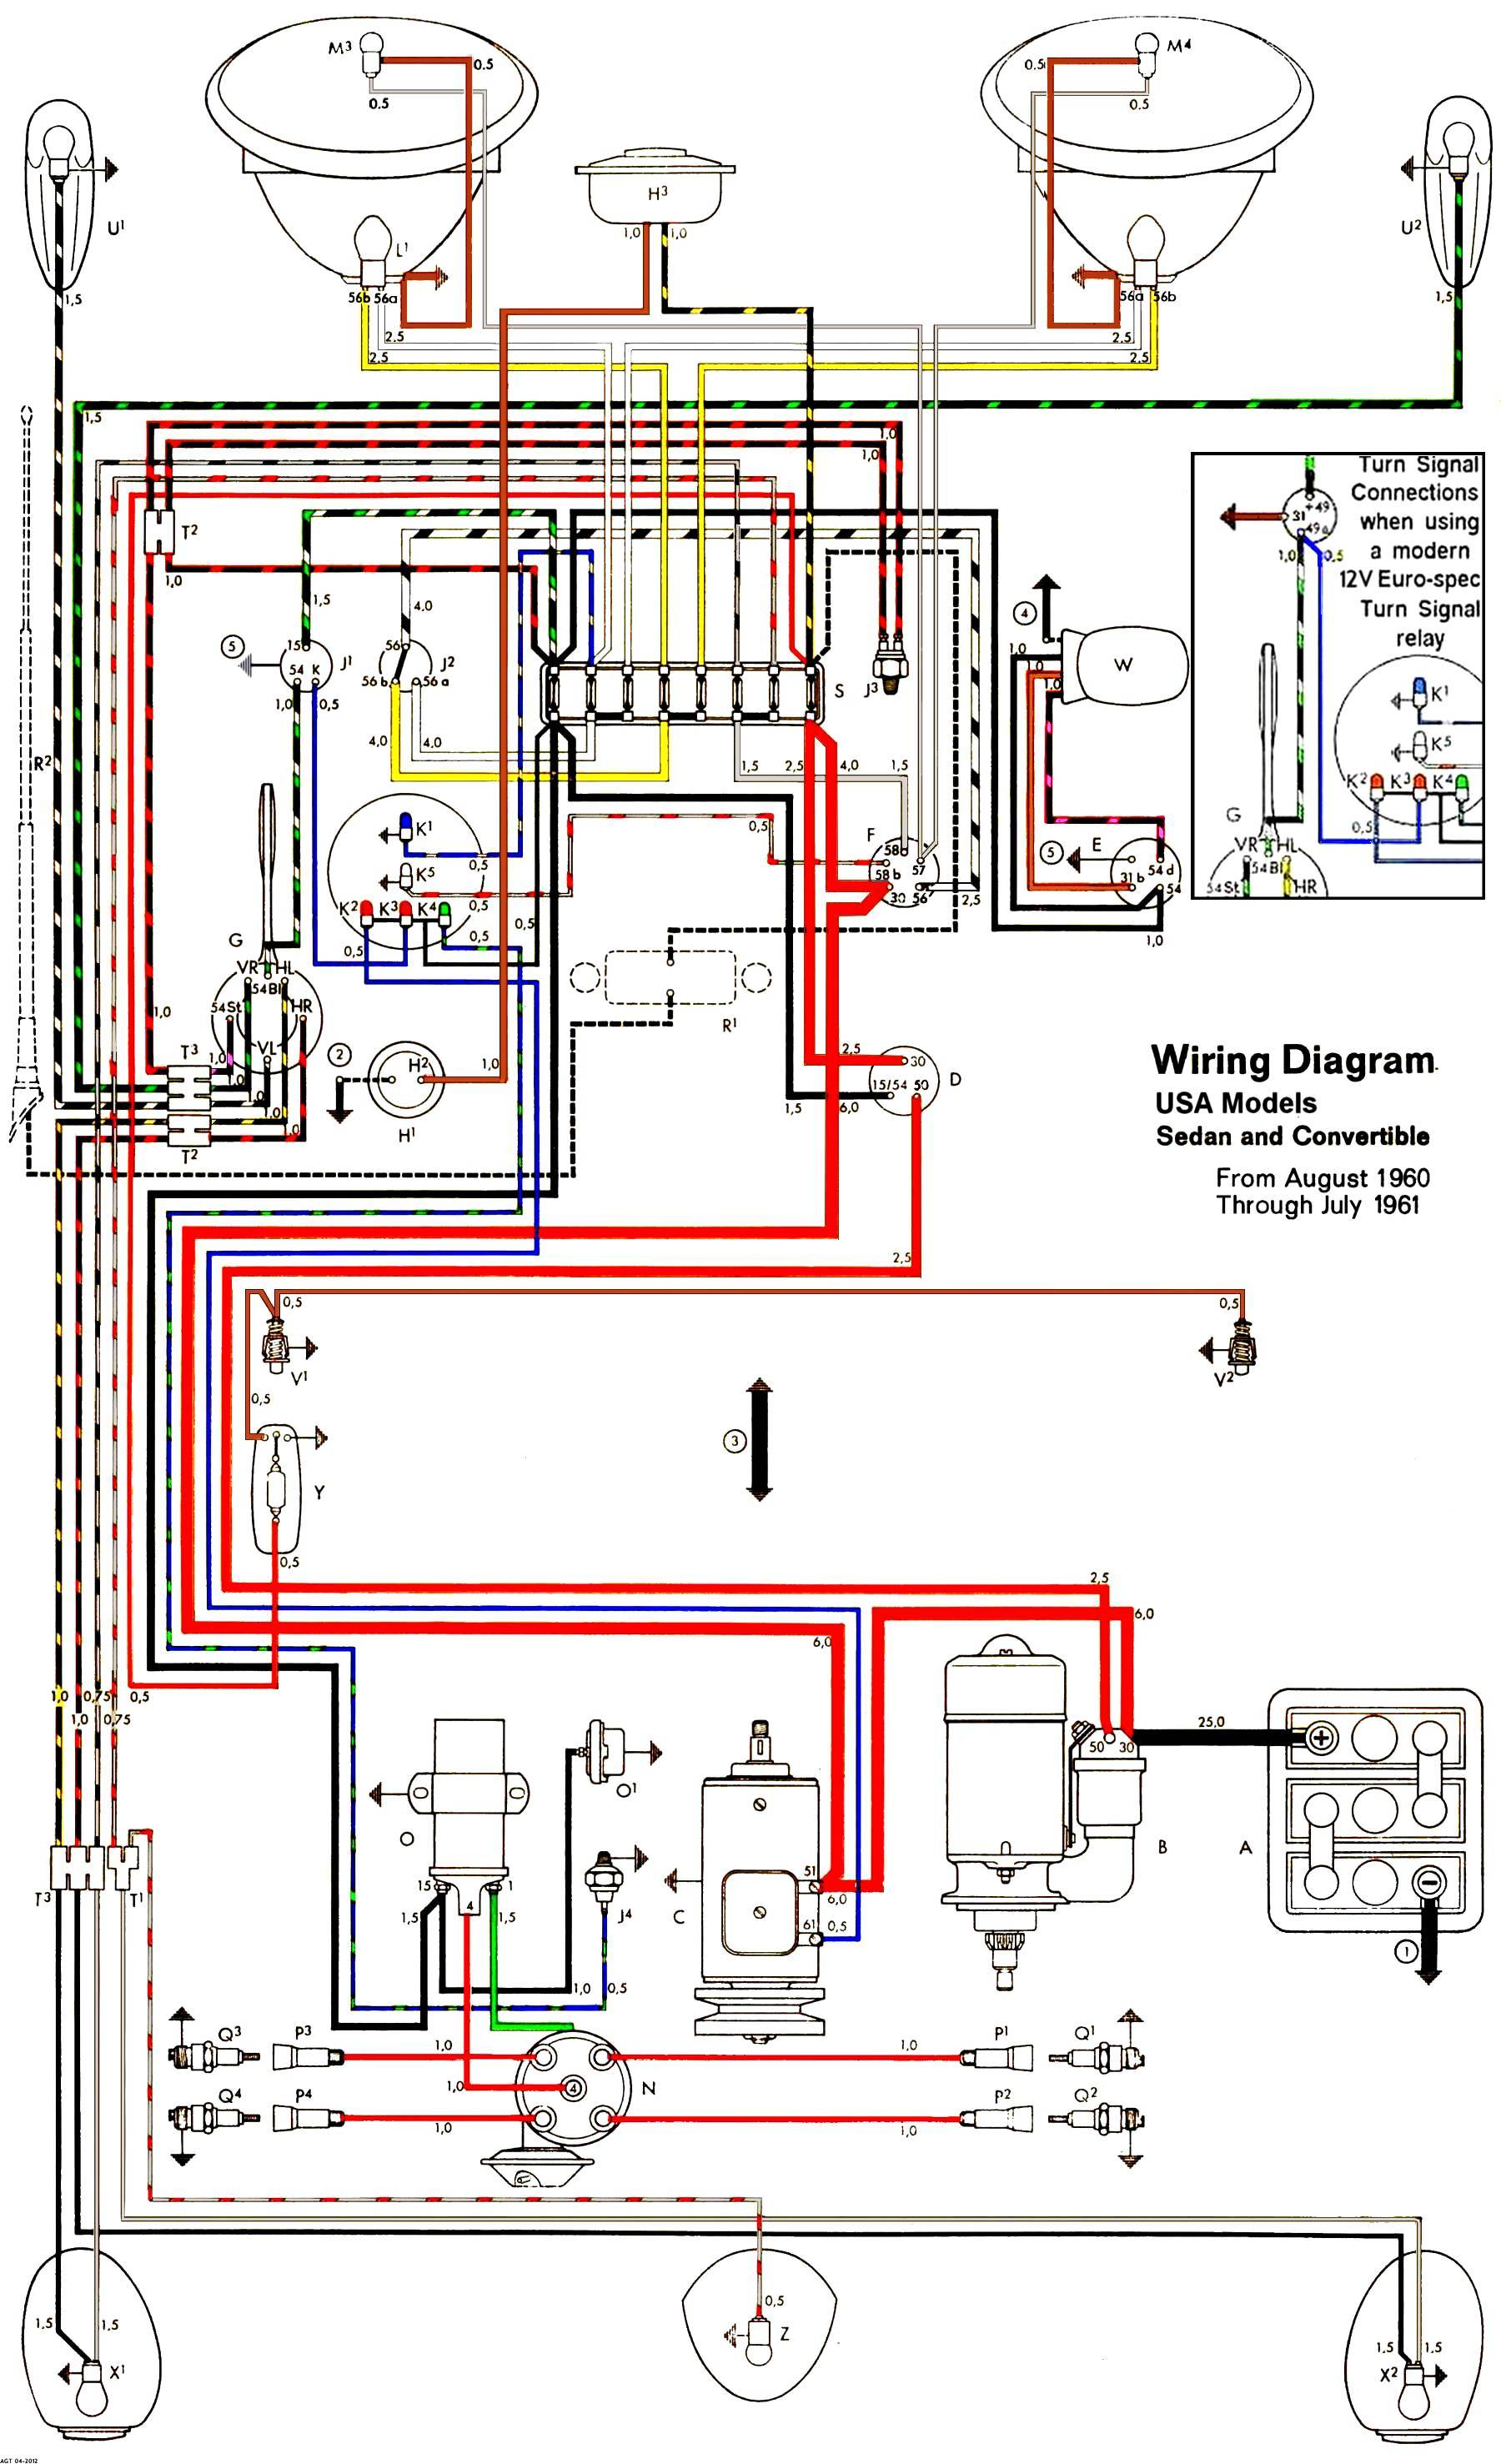 1961USA T1 69 vw wiring diagram horn ring wiring diagram